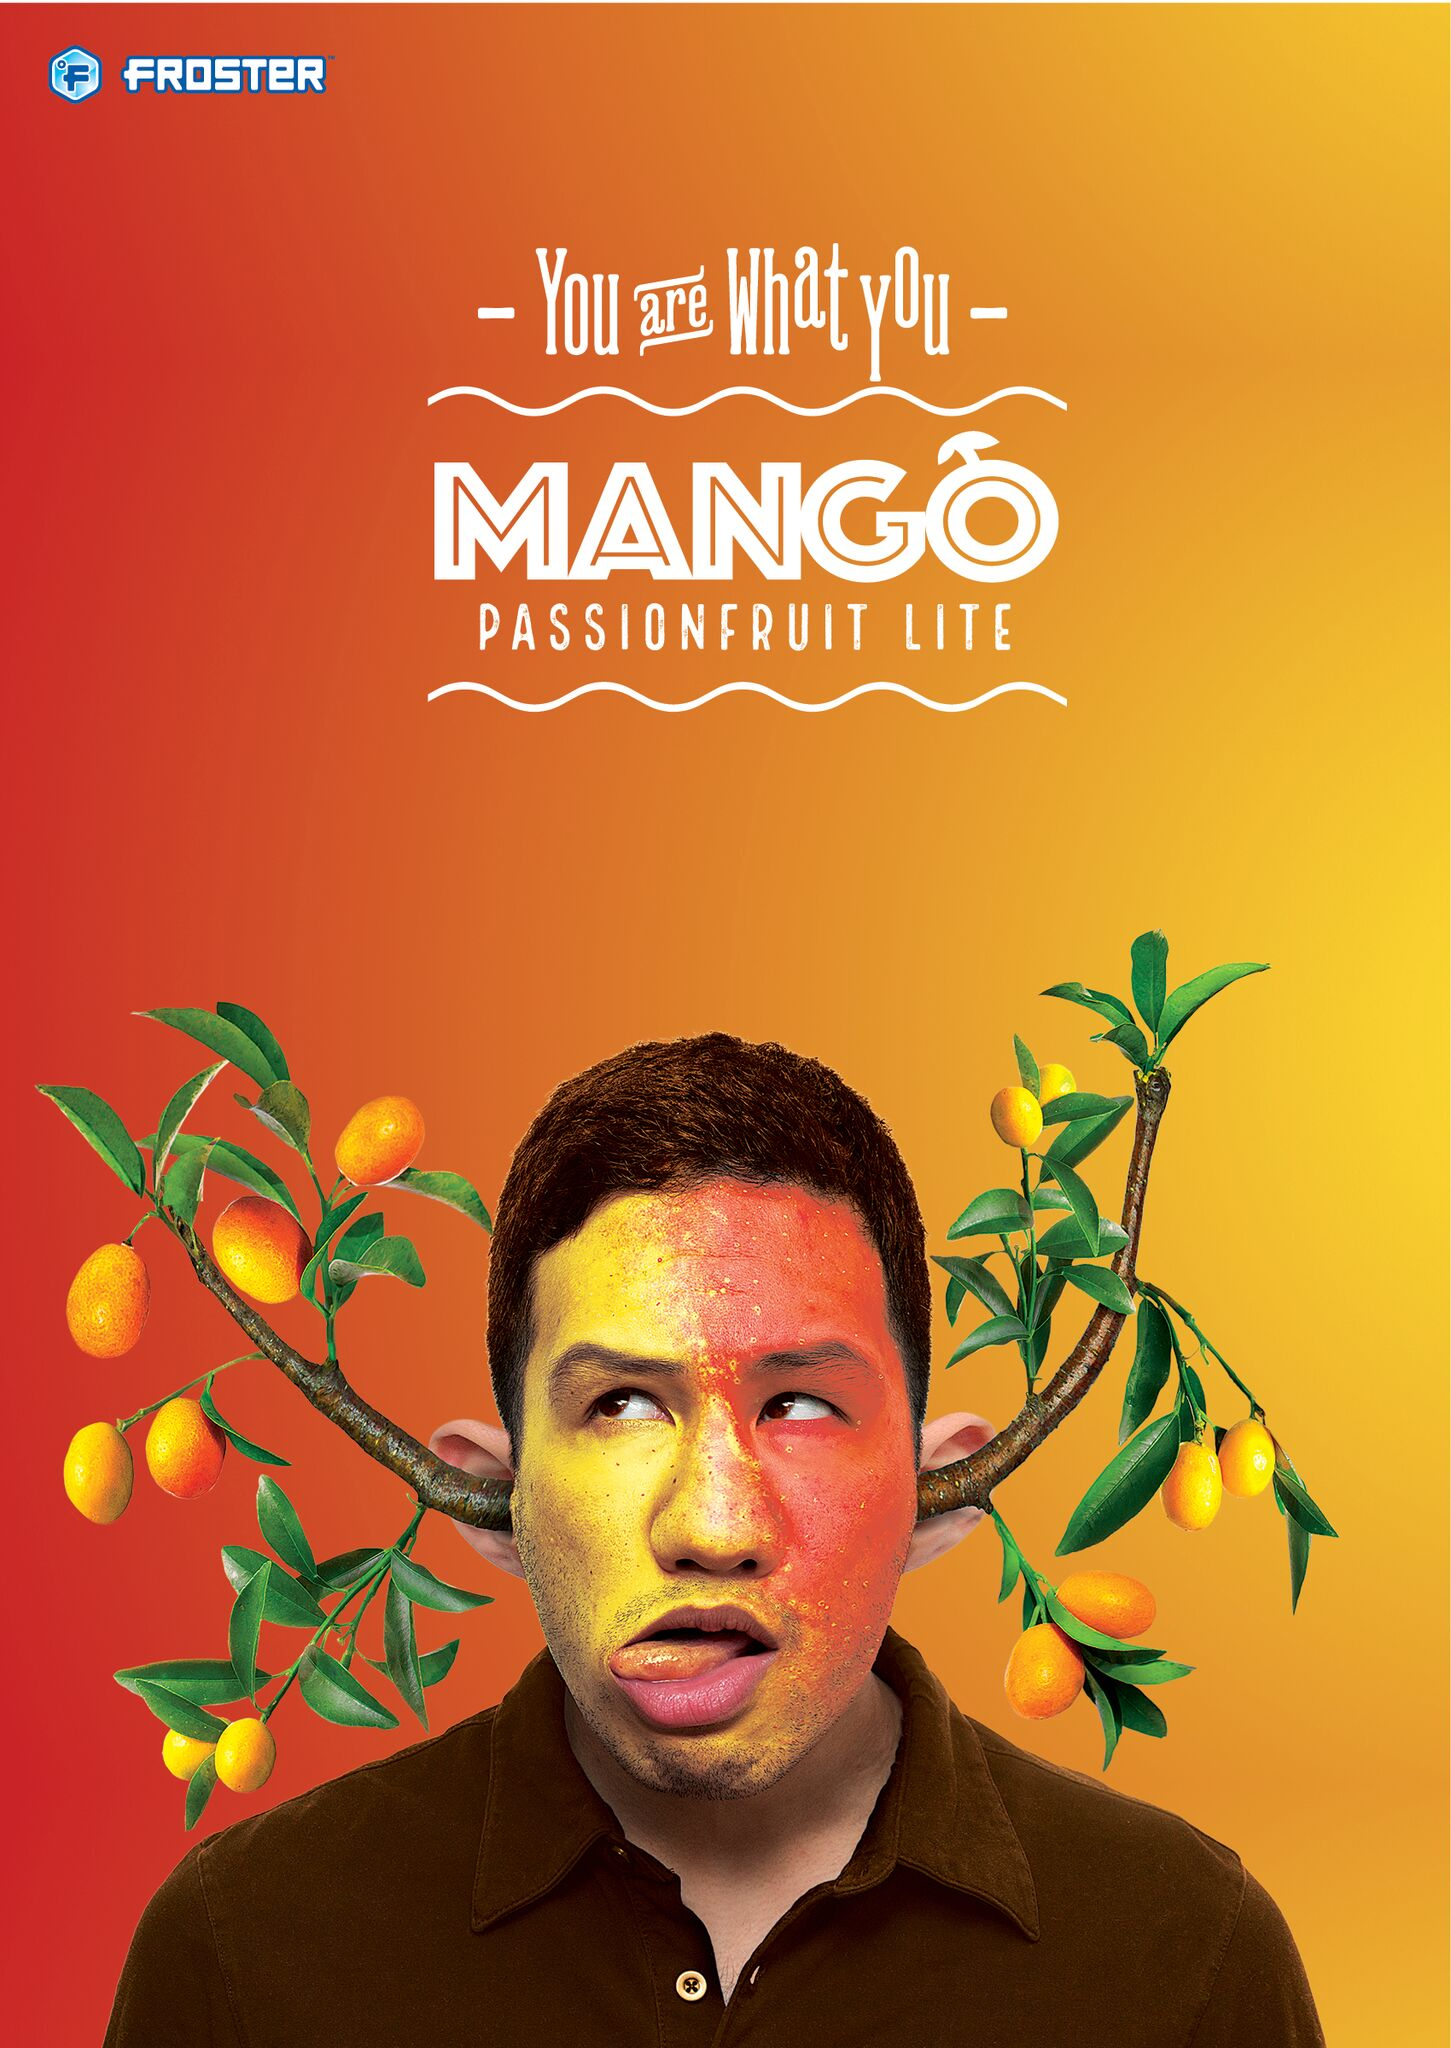 Mac's Froster - mango poster